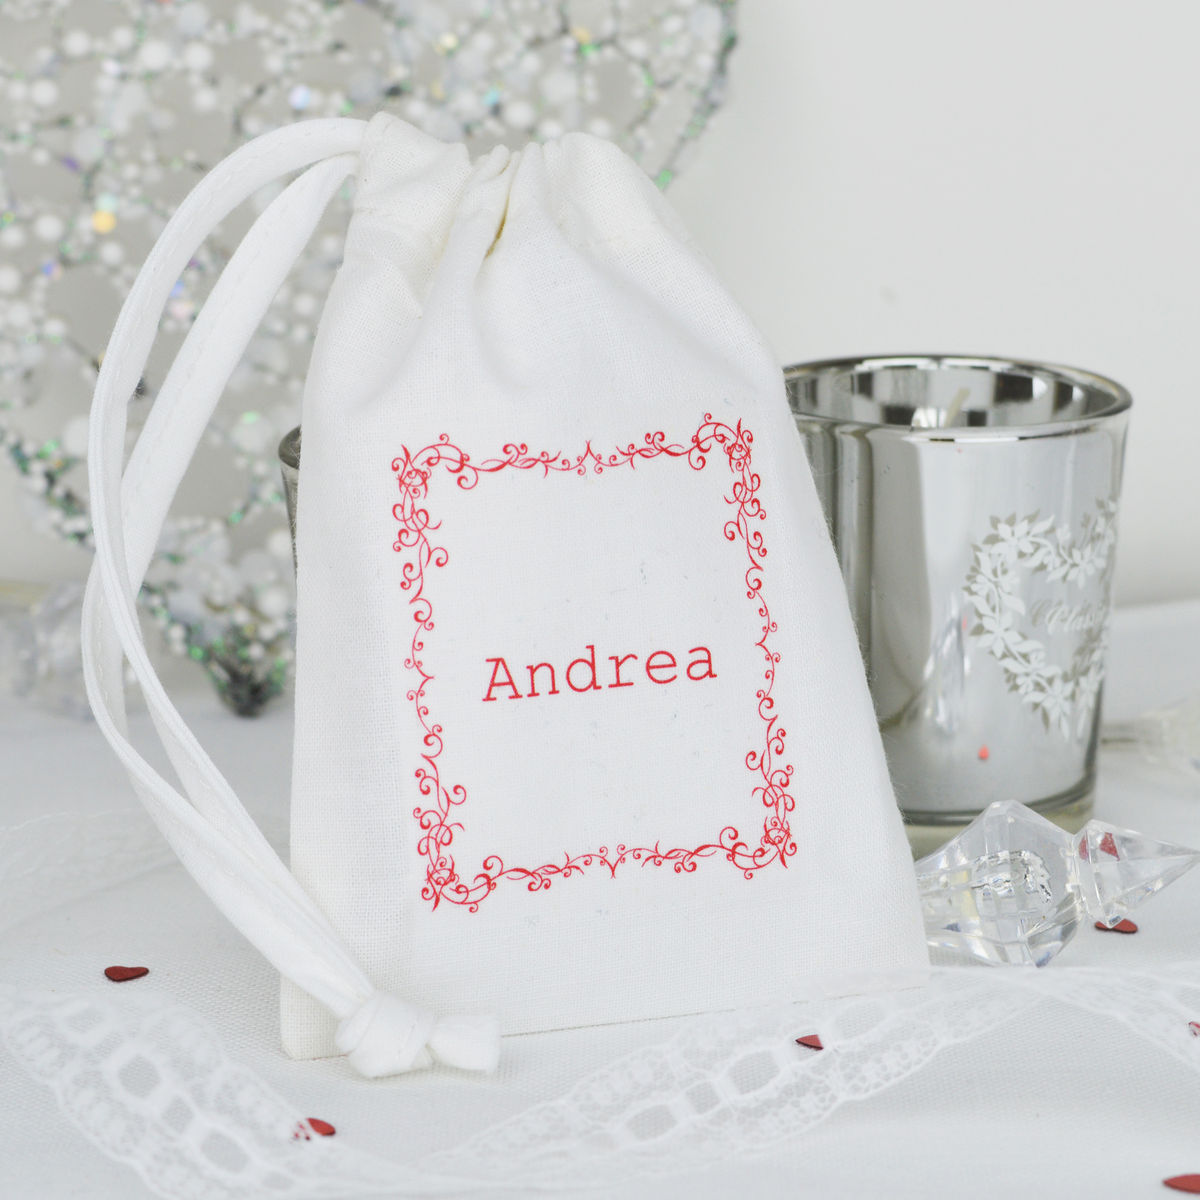 Personalised Table Gift Bag - product image